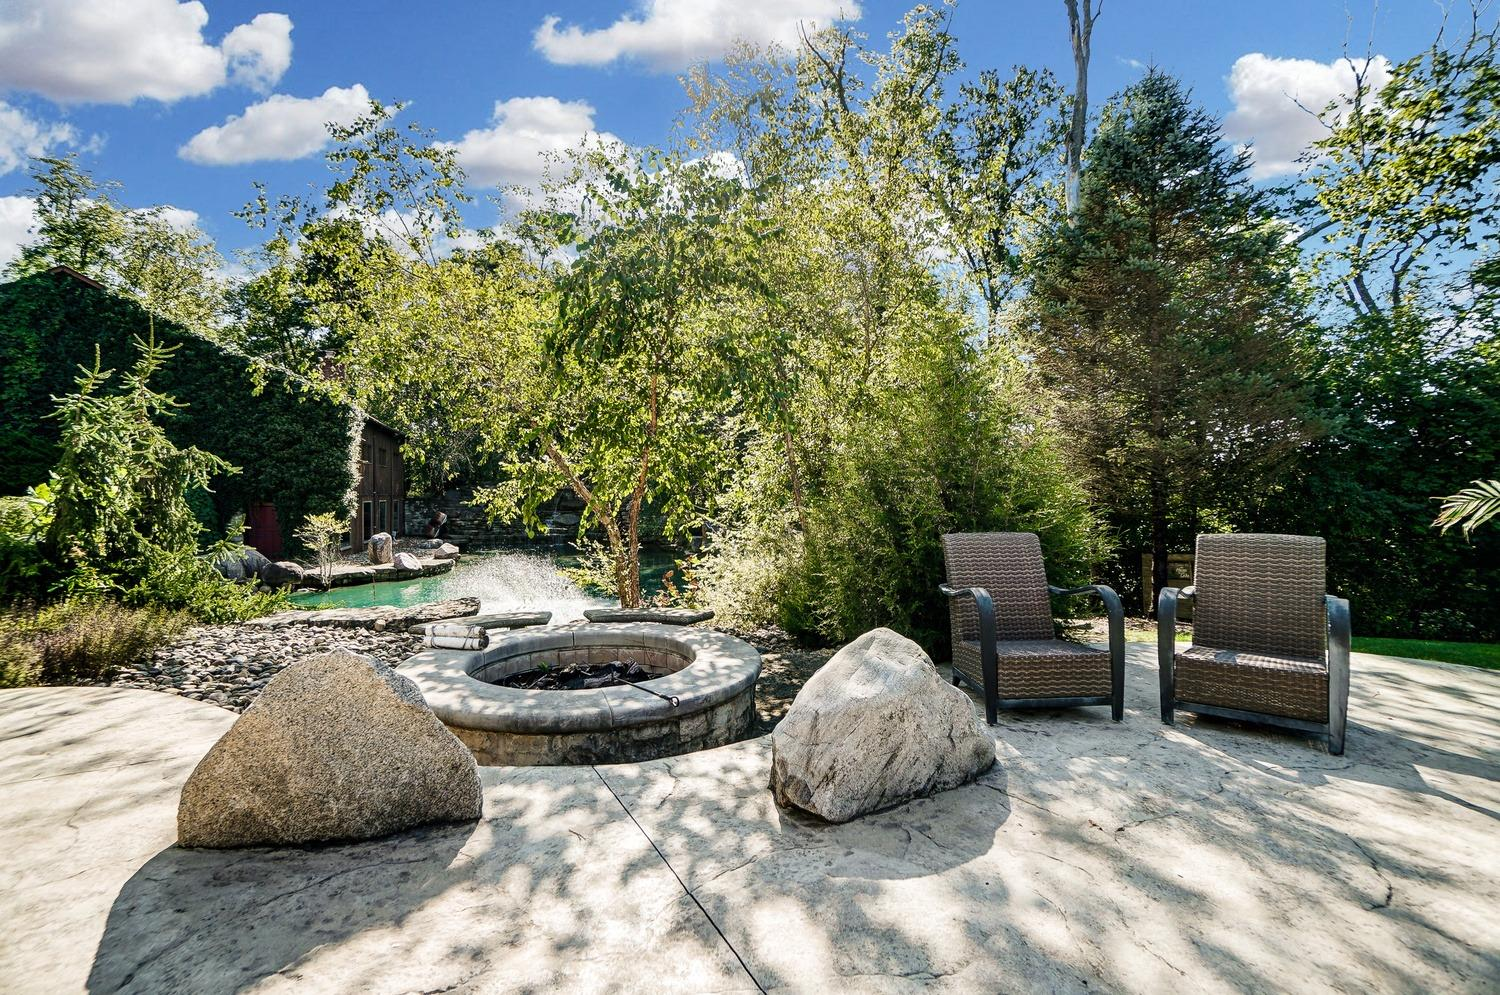 There is a large built-in firepit with a gas log lighter situated next to the pool patio with views of the pool and scenic waterfall pond.